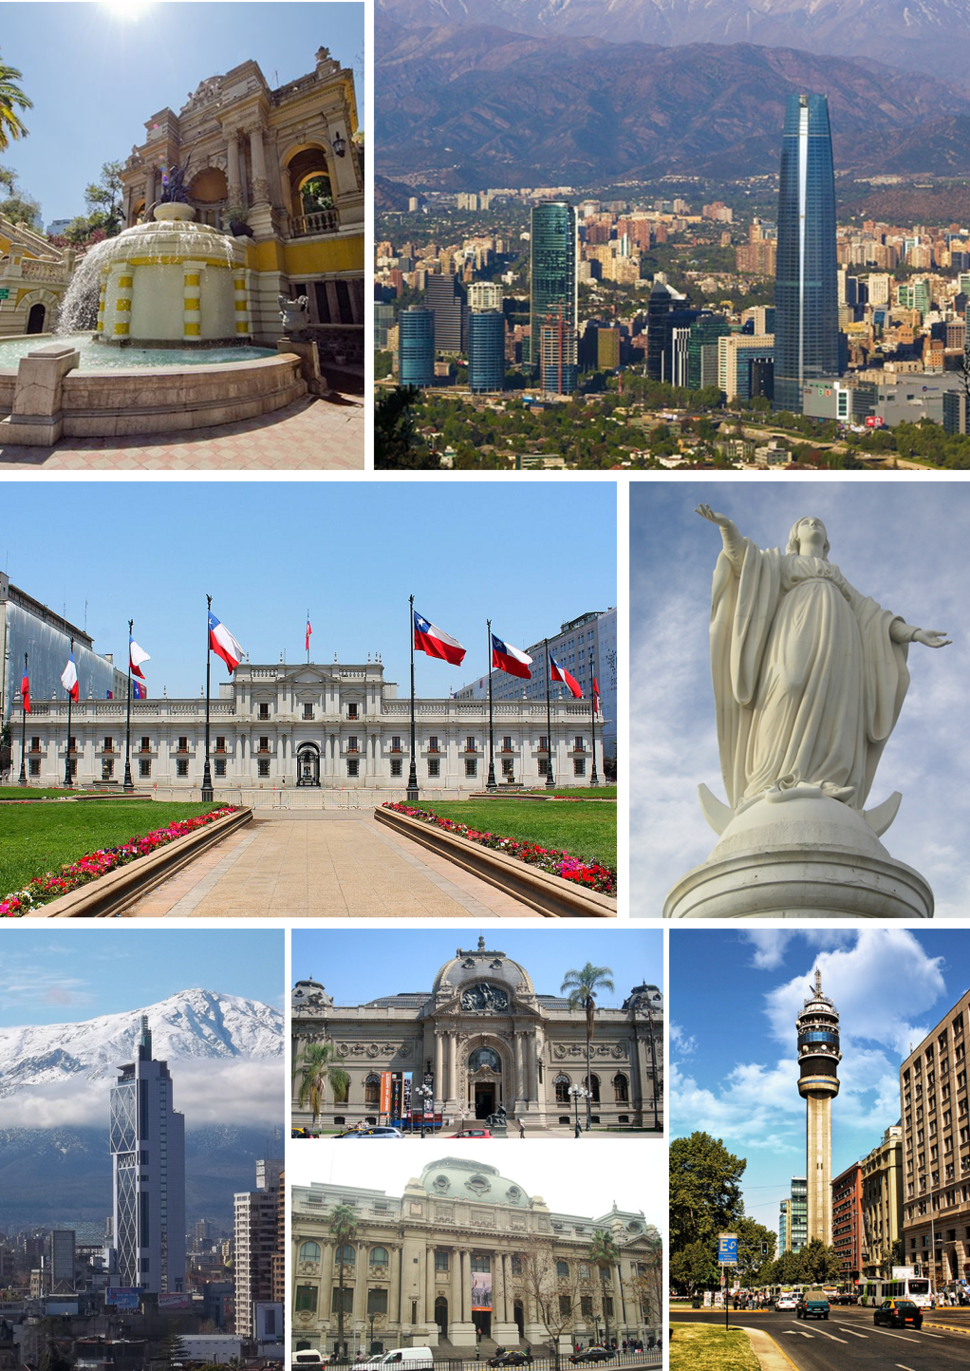 Collage of Santiago, left to right, top to bottom: Santa Lucía Hill, panoramic view of Santiago, La Moneda, Statue of the Immaculate Conception, Torre Telefónica, National Museum of Fine Arts and National Library of Chile, Torre Entel, Estación Central Santiago Metro station and Railway Station and San Francisco Church.